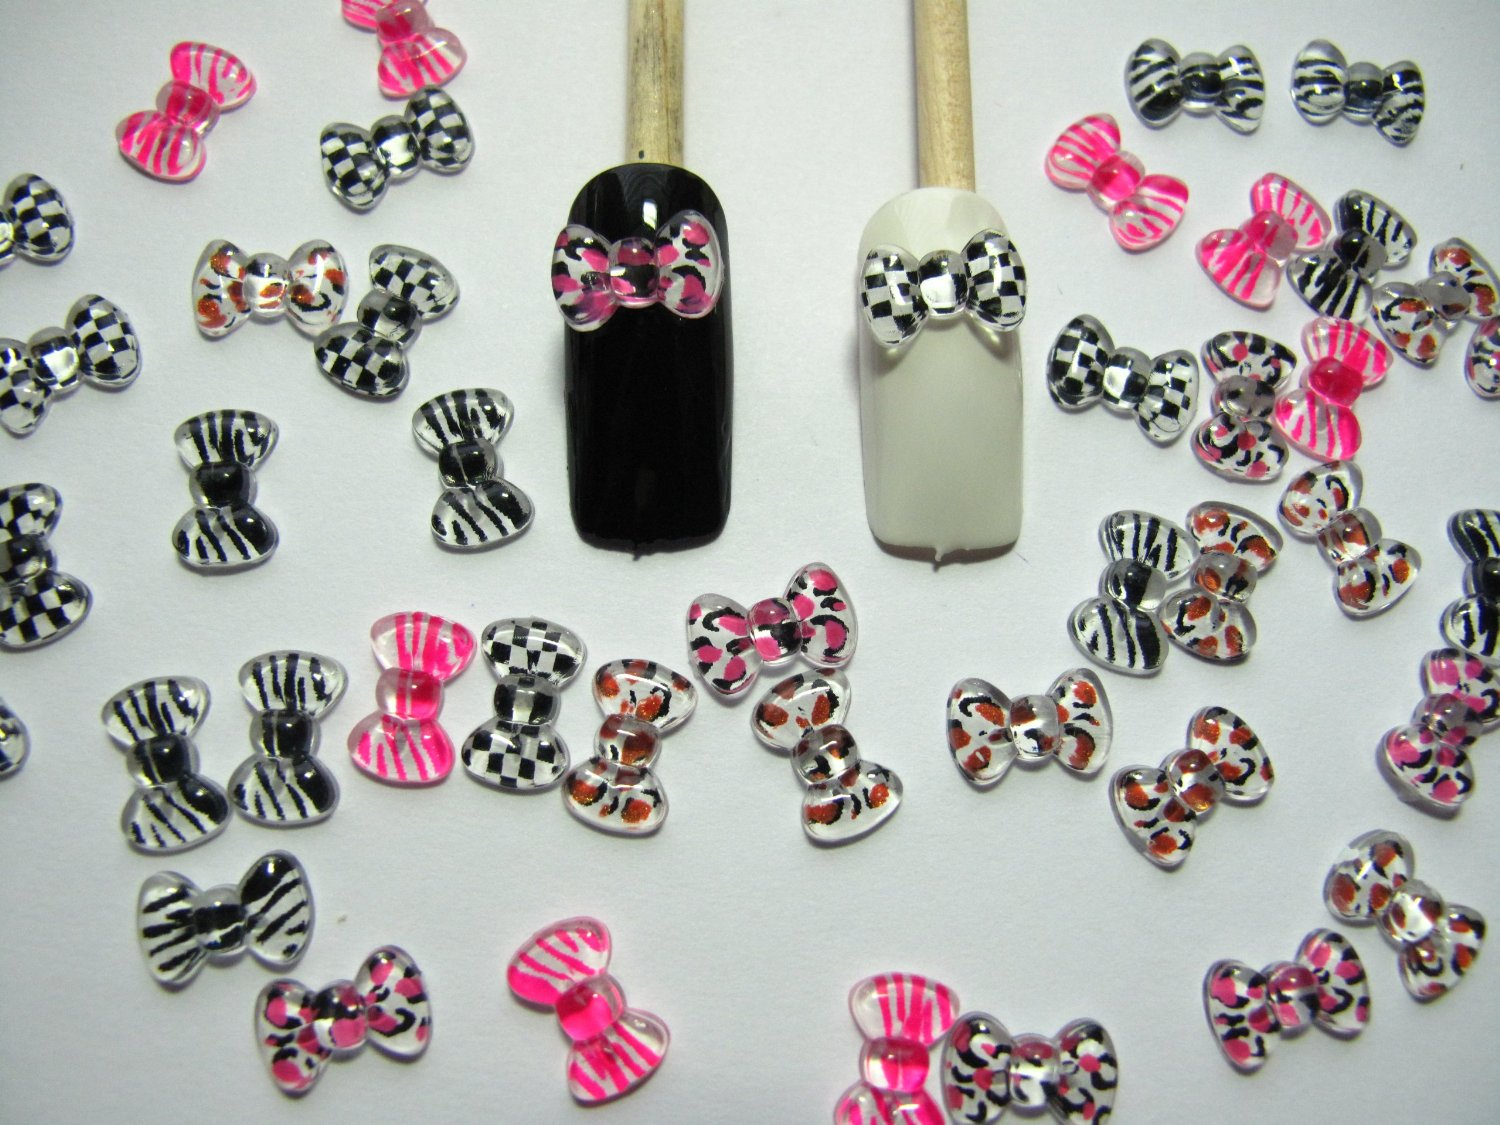 3d Printed Bows Glamorous Nail Supplies